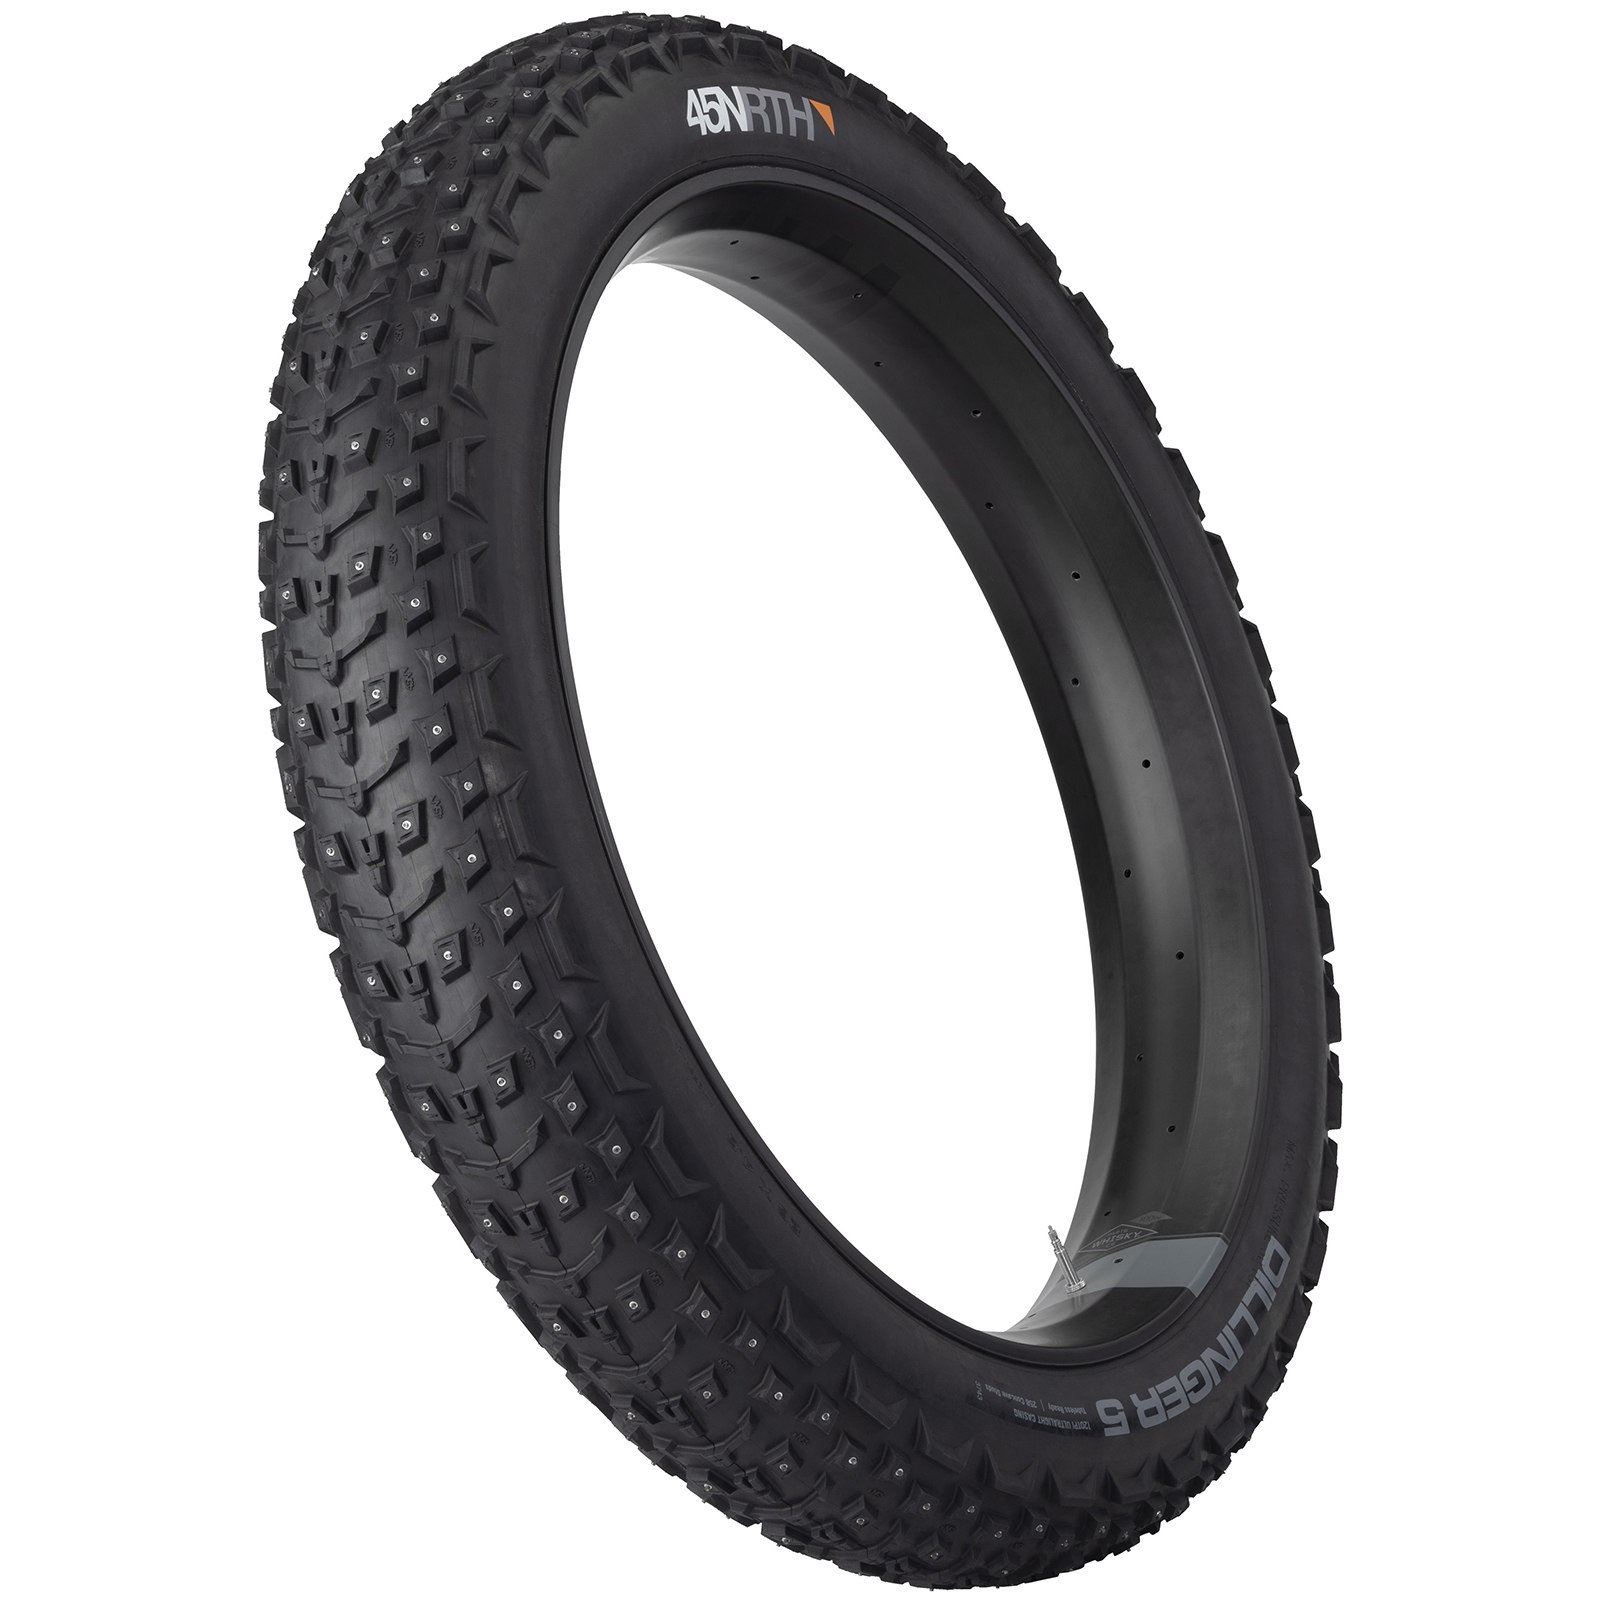 Imagen de 45NRTH Dillinger 5 Fatbike Folding Tire with 258 Studs - Tubeless Ready - 26x4.6 Inches - 60TPI